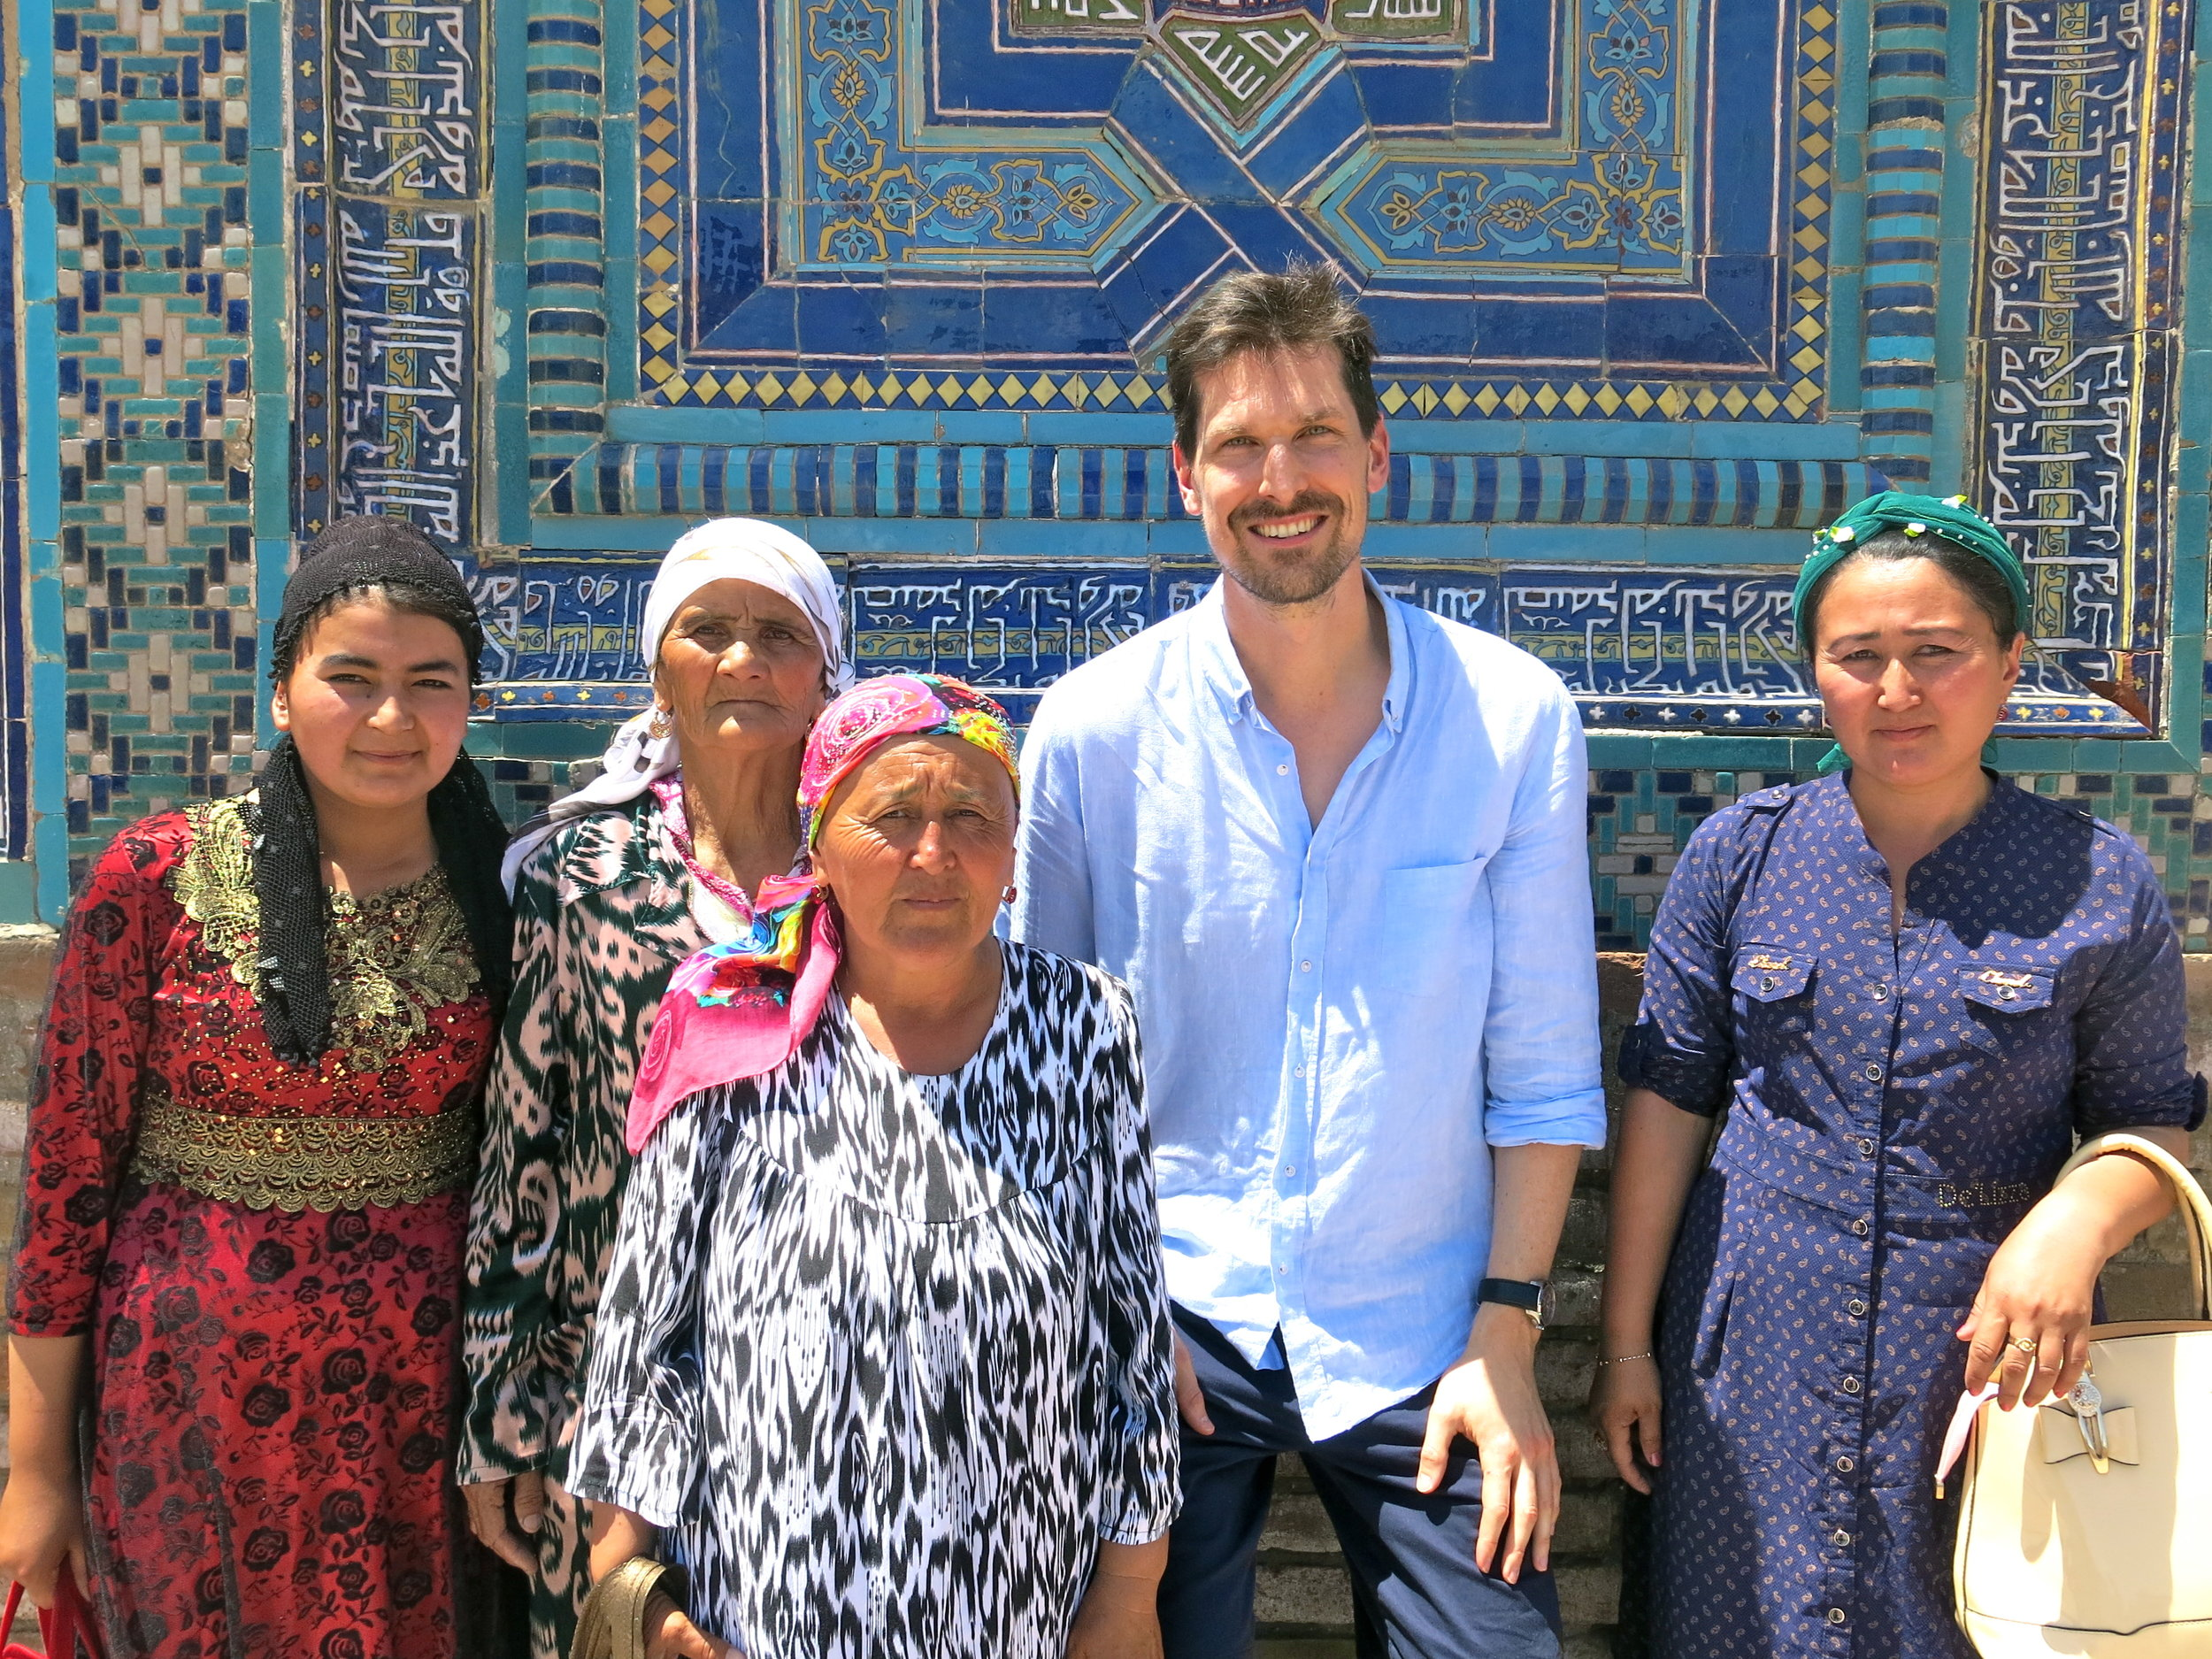 Meeting Uzbek women with their beautiful colorful dresses